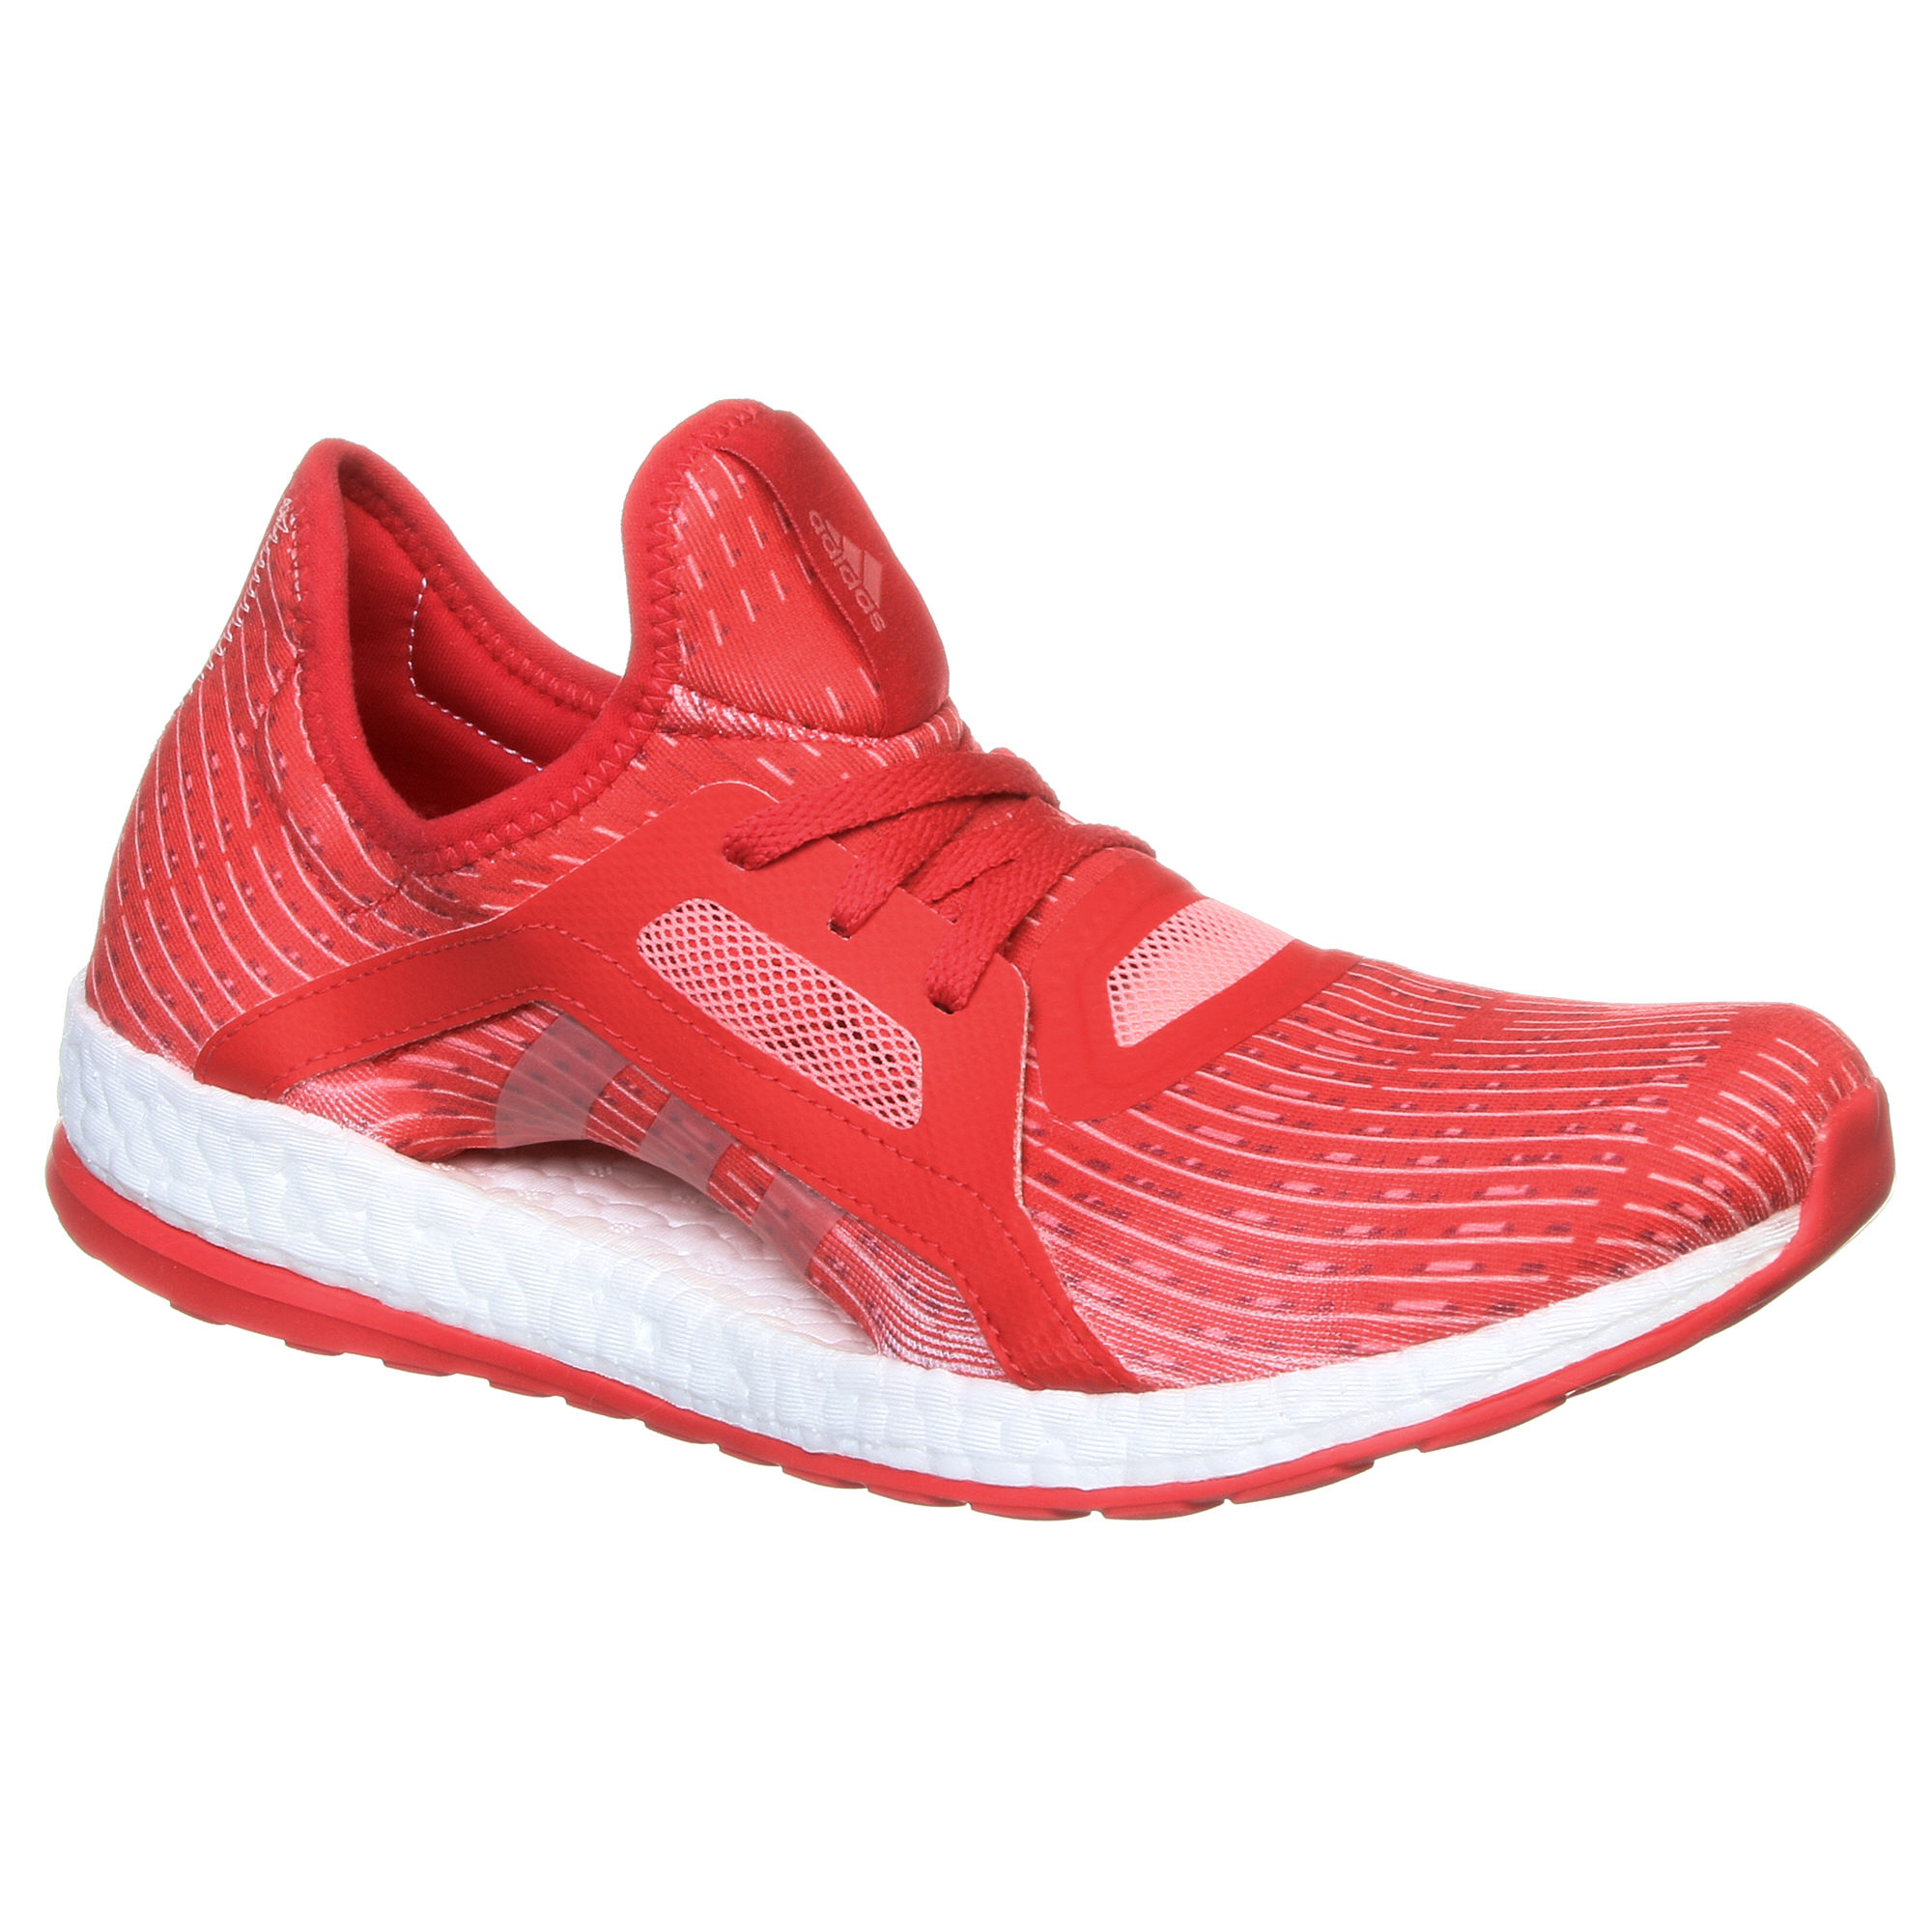 Lastest Adidas Court Vantage | Adidas Red | Adidas Originals Shoes | Adidas Shoes Women